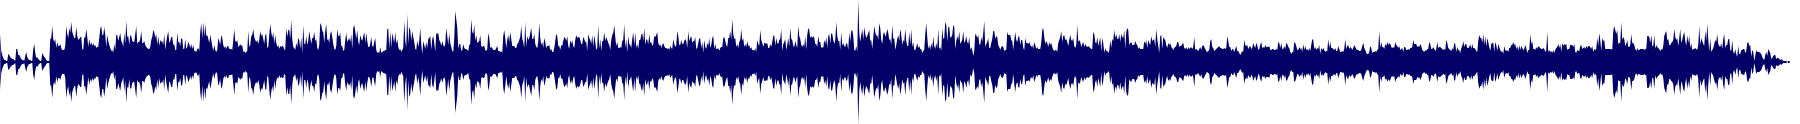 waveform of track #73214